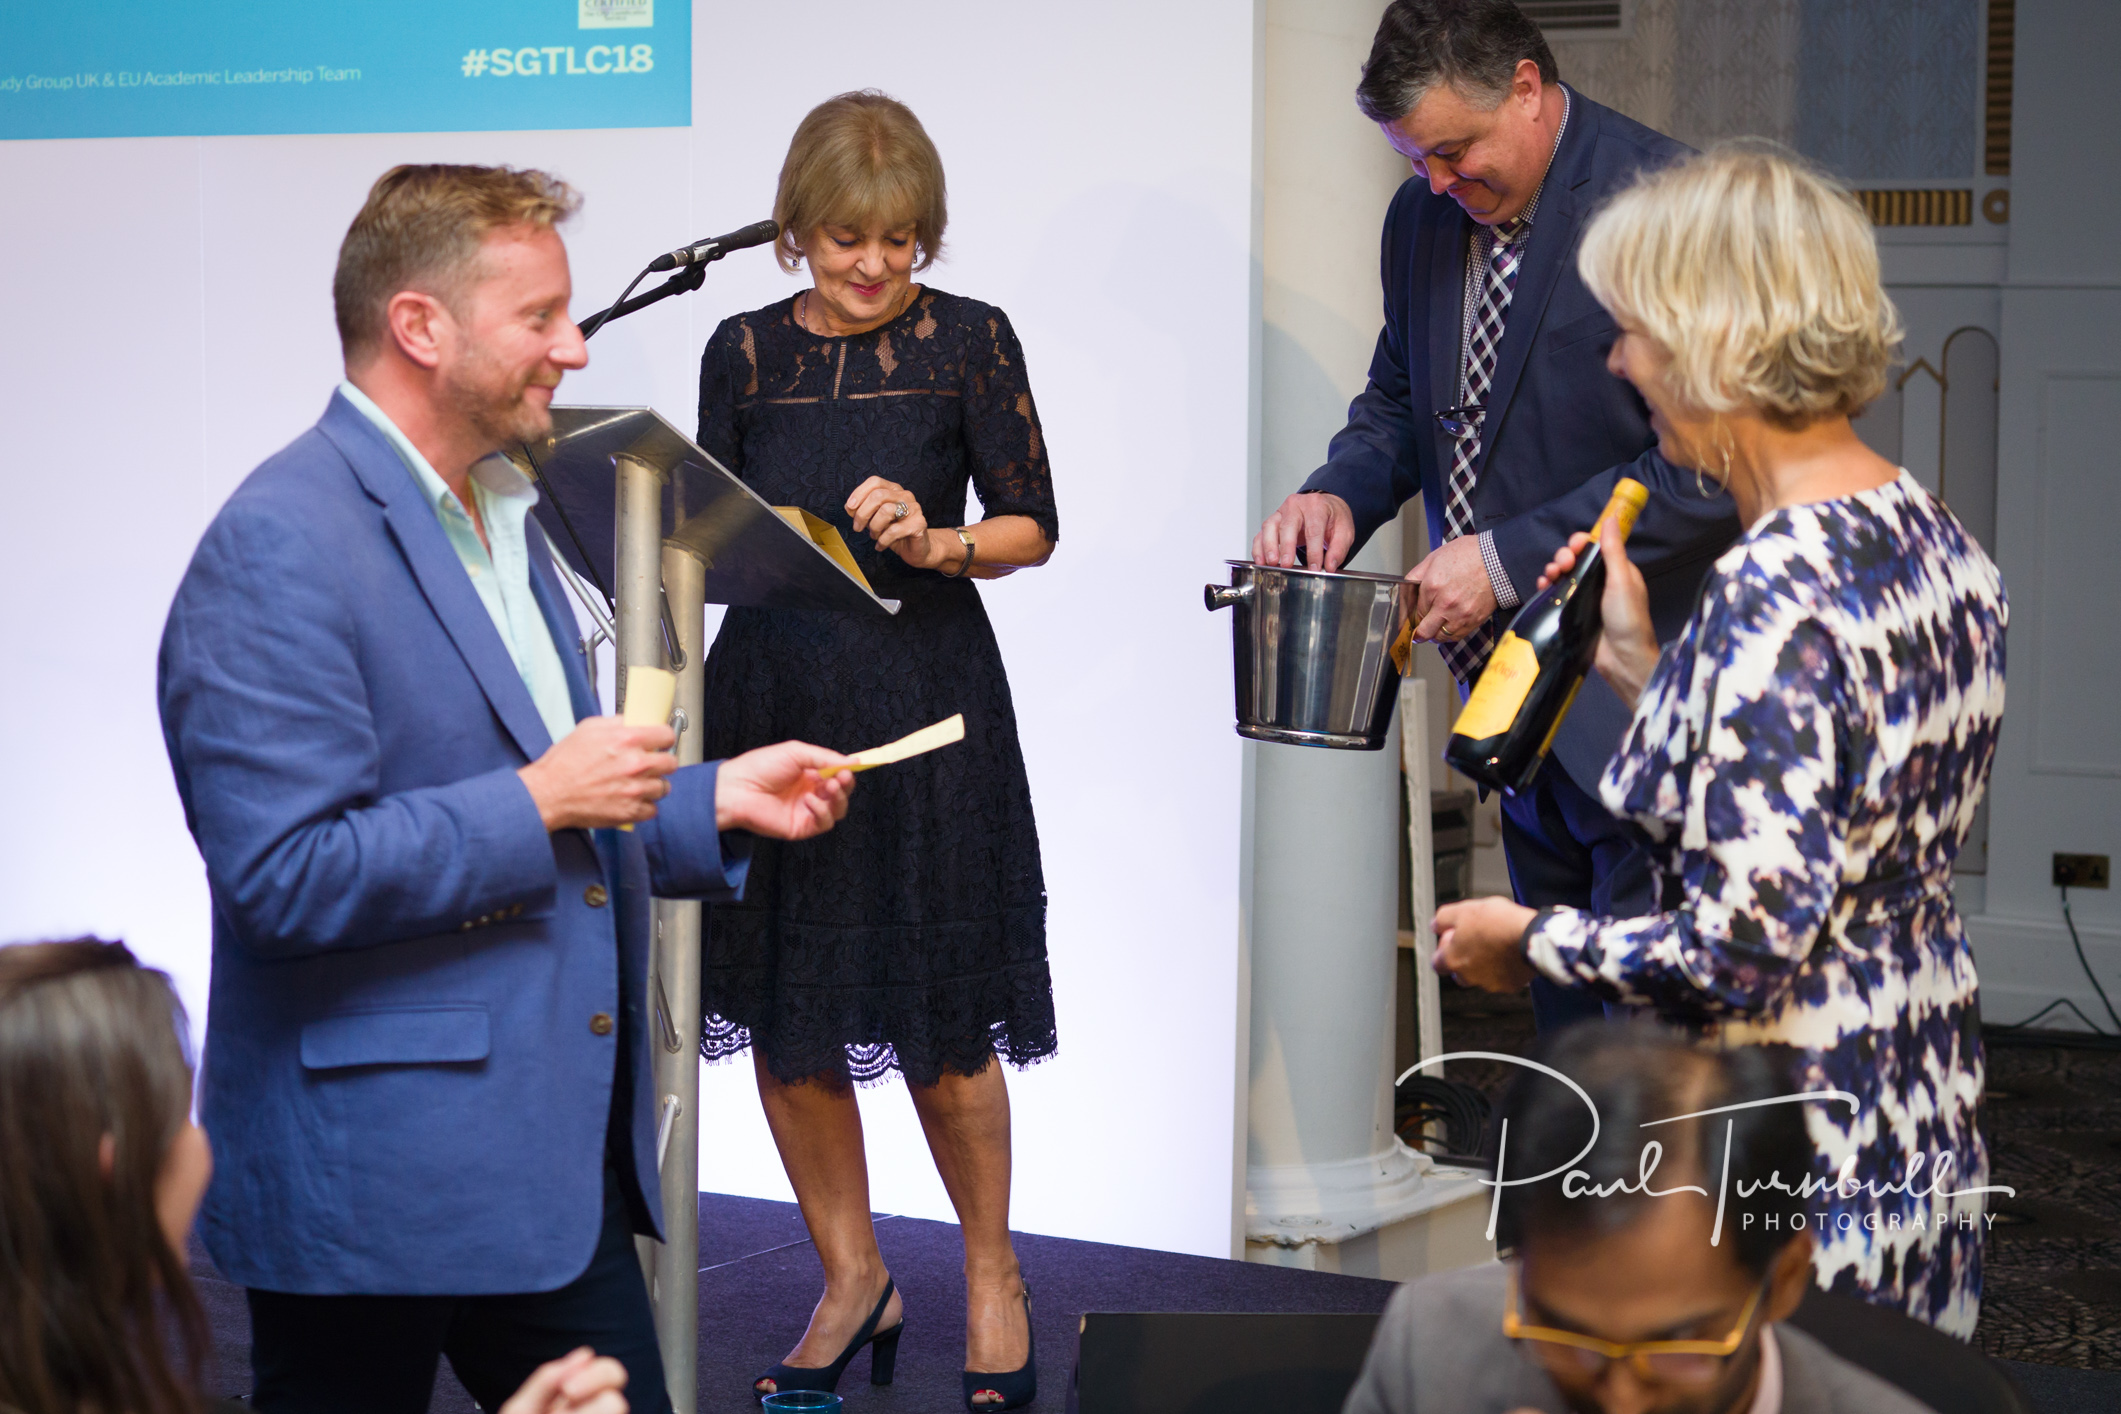 conference-event-photographer-queens-hotel-leeds-yorkshire-031.jpg